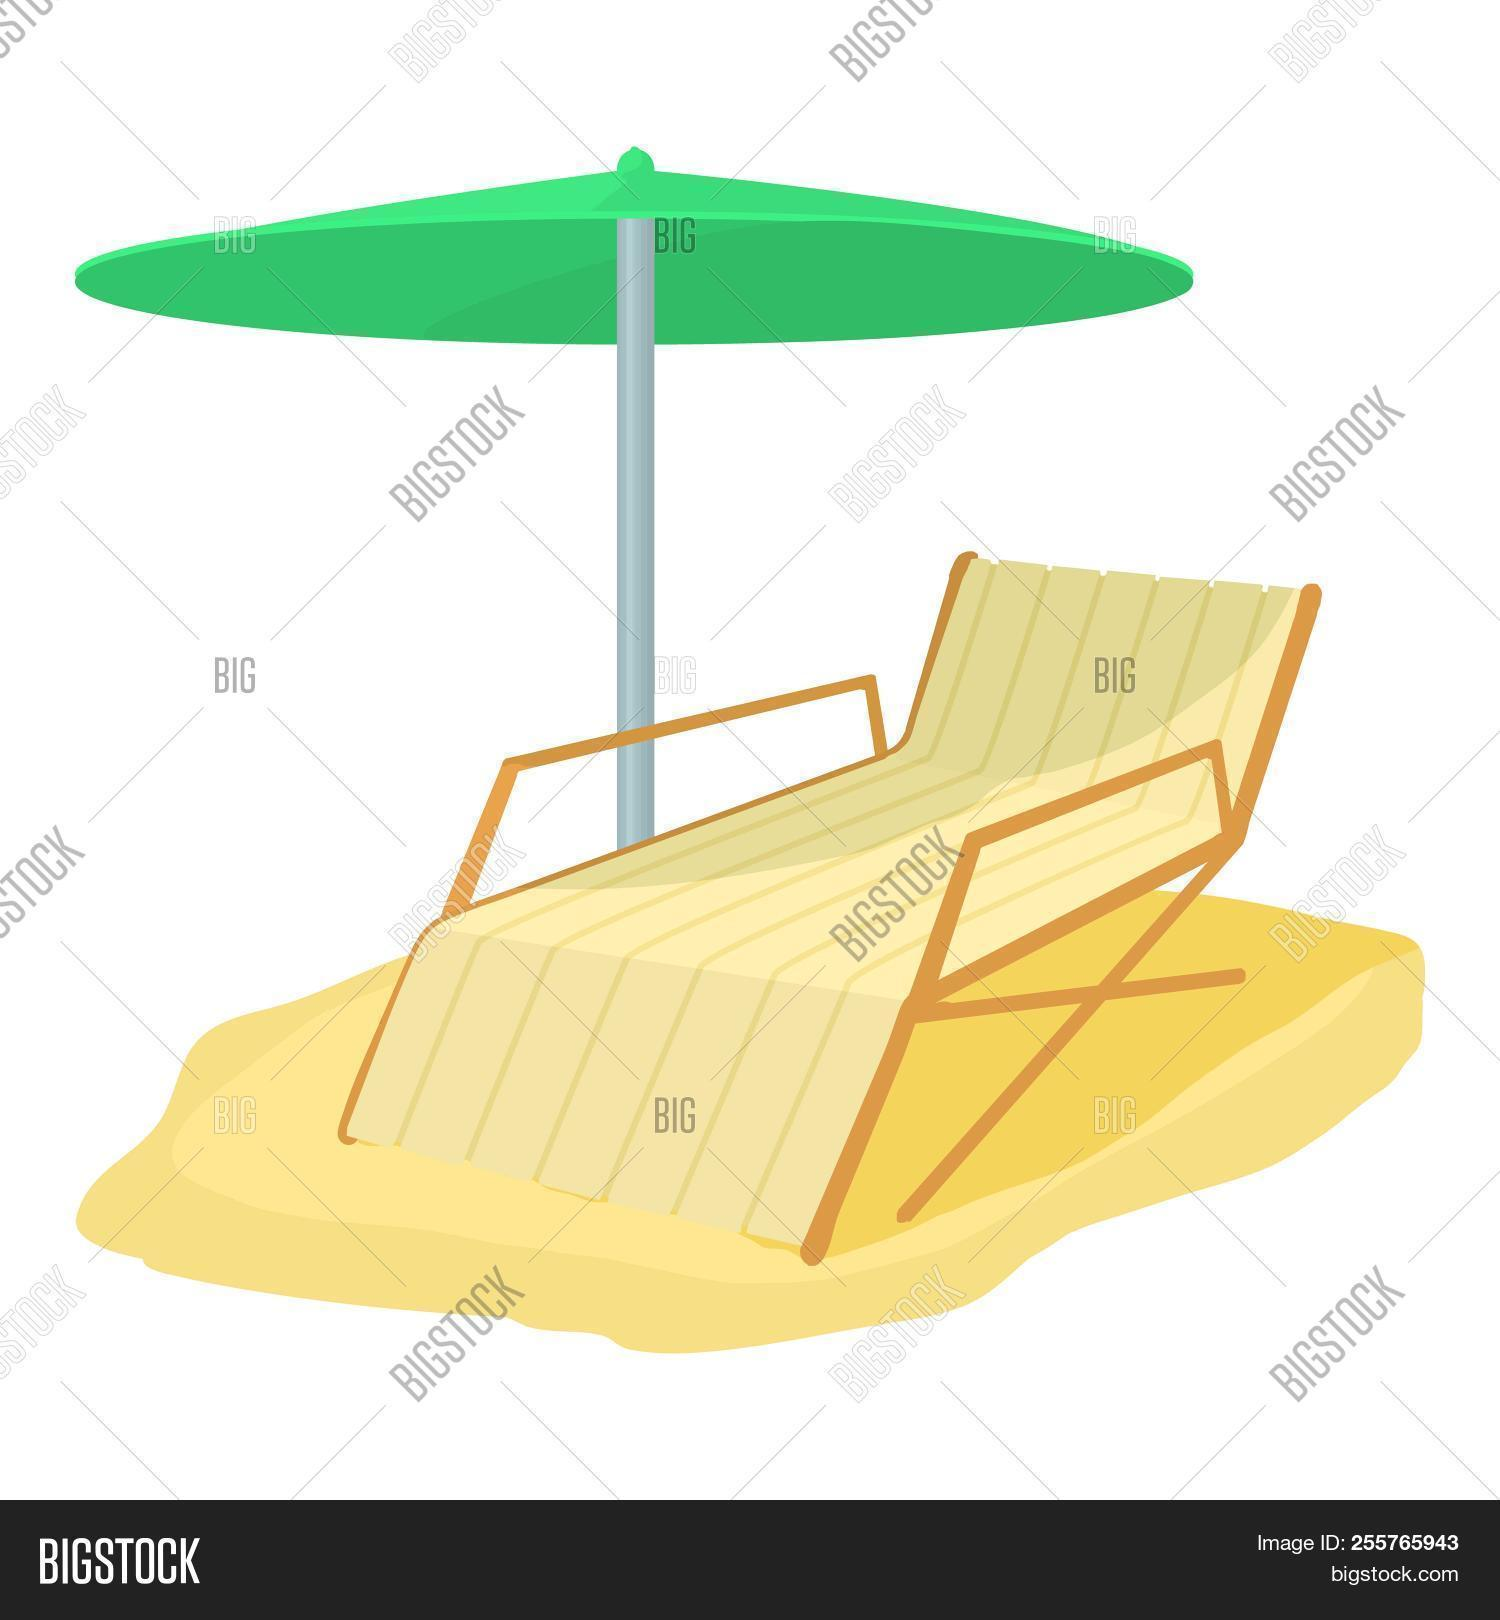 armchair,beach,cartoon,chair,comfort,covering,deck,deckchair,flooring,green,holiday,icon,illustration,leisure,line,logo,lounge,nature,object,plastic,protection,recliner,recreation,relax,rest,sand,season,sign,summer,sun,symbol,tourism,travel,tropical,umbrella,yellow